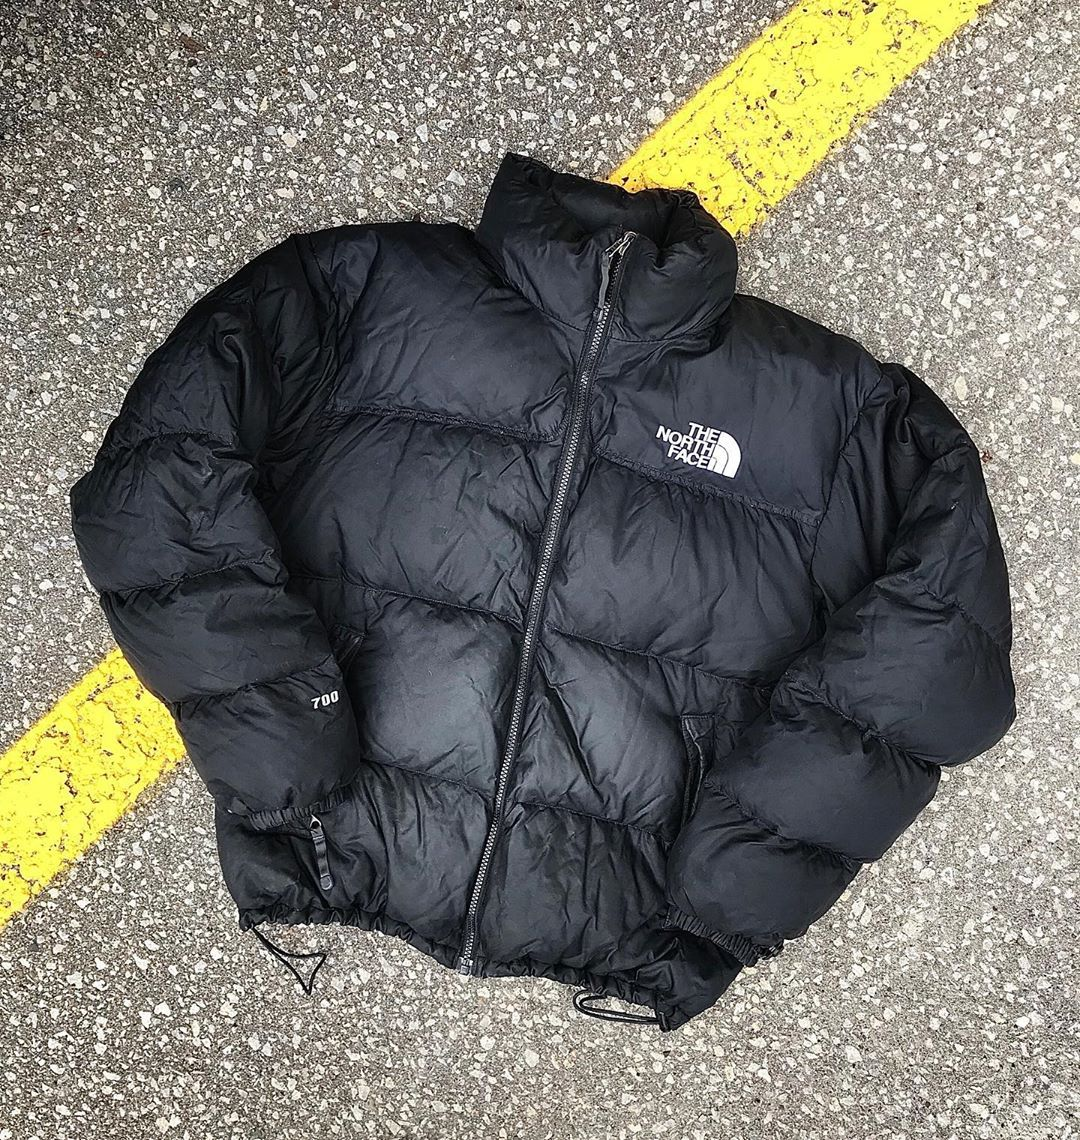 Toronto Vintage On Instagram 00s The North Face Nuptse In Sz M In All Black Classic Silhouette And T North Face Nuptse Winter Jackets All Black [ 1140 x 1080 Pixel ]